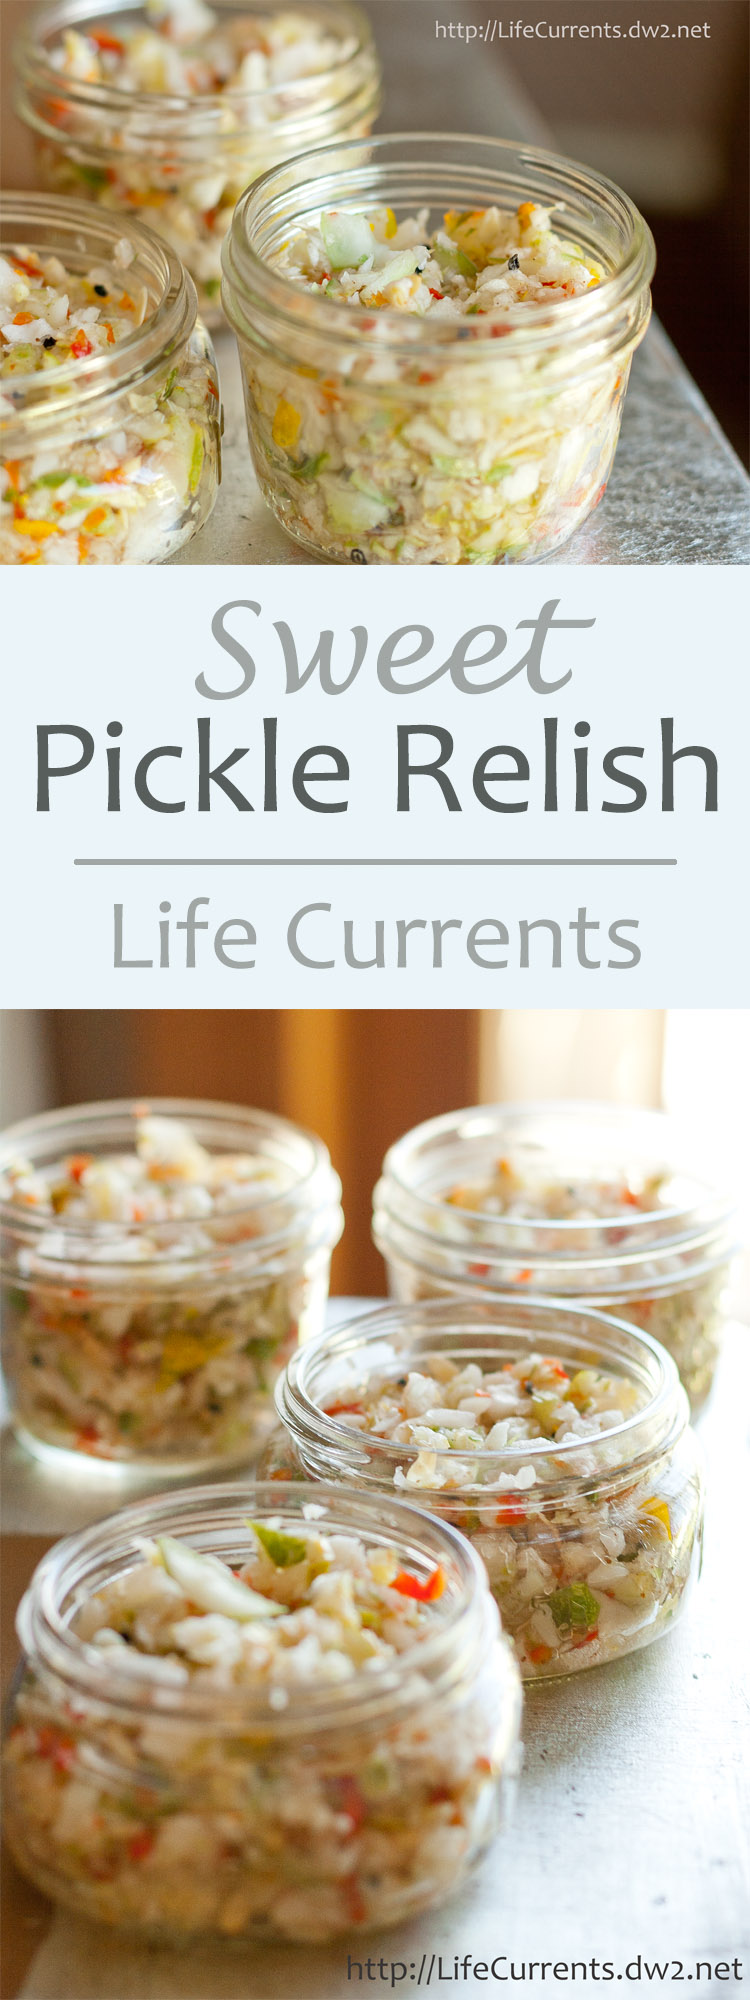 Sweet Pickle Relish - try making your own to kick up your burgers and dogs all summer long!